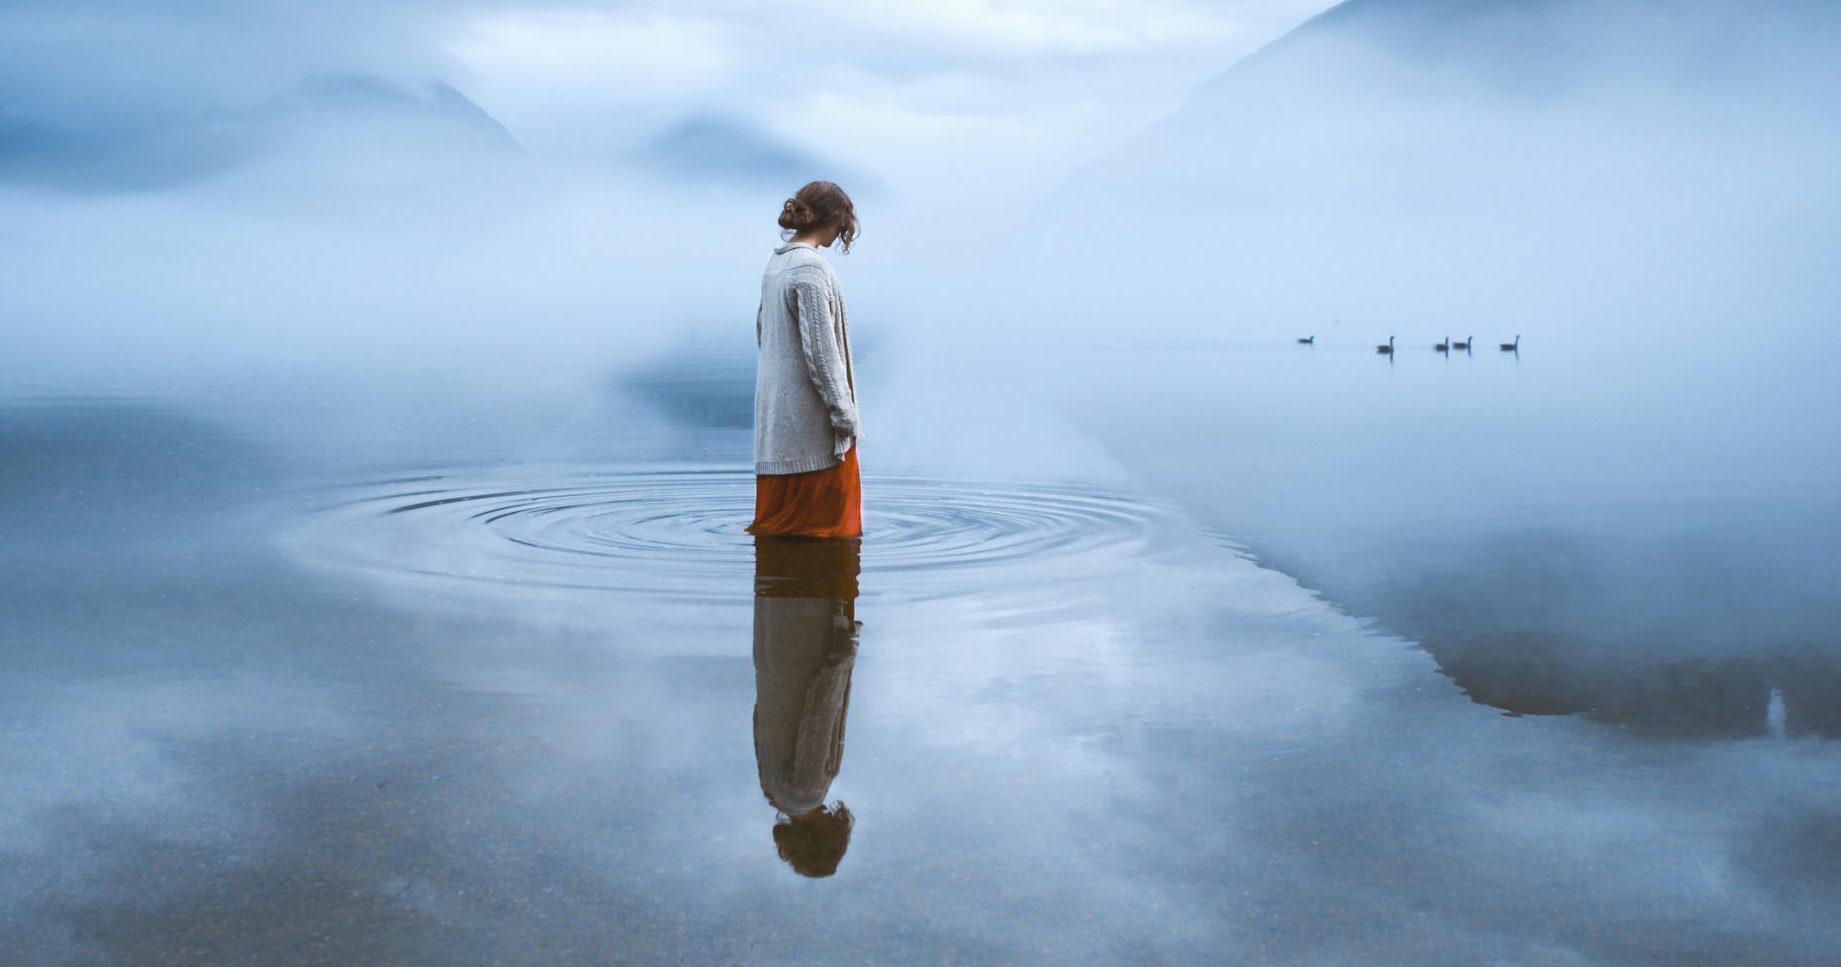 Wanderlust And Natural Beauty In Spectacular Landscape Photography By Elizabeth Gadd